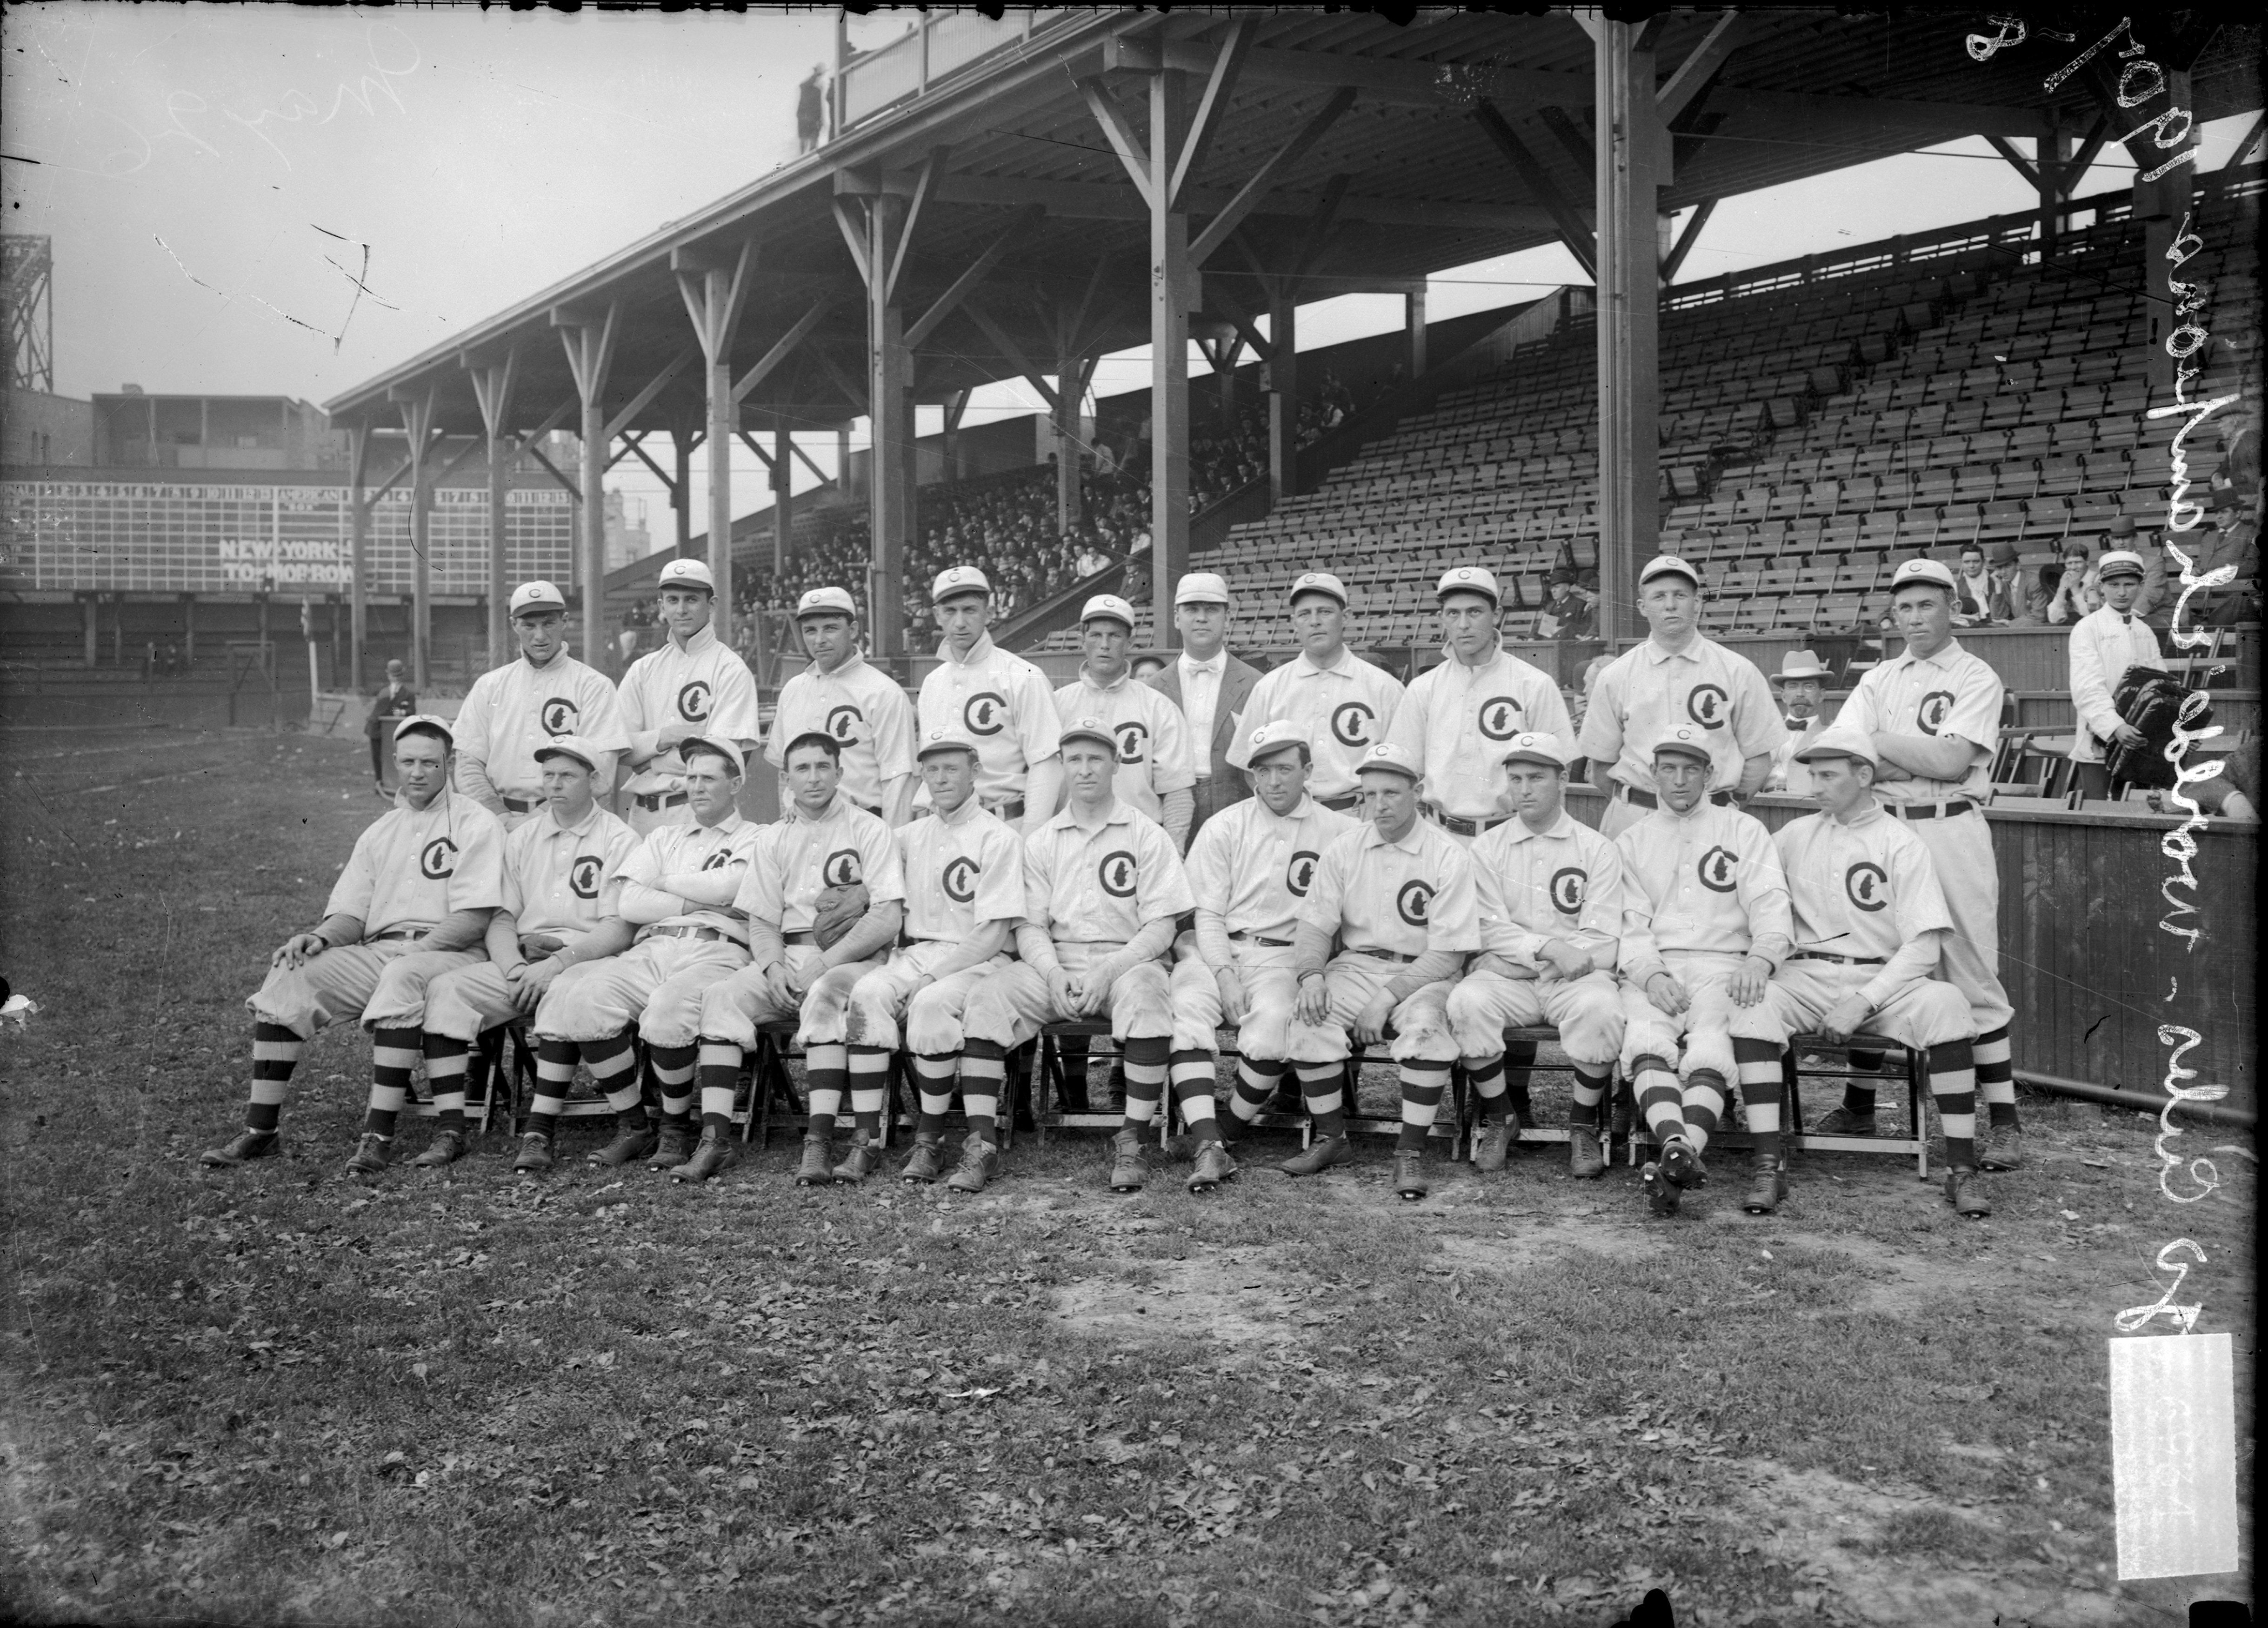 Group portrait of the Chicago Cubs posing for a photograph at West Side Grounds, Chicago, 1908.